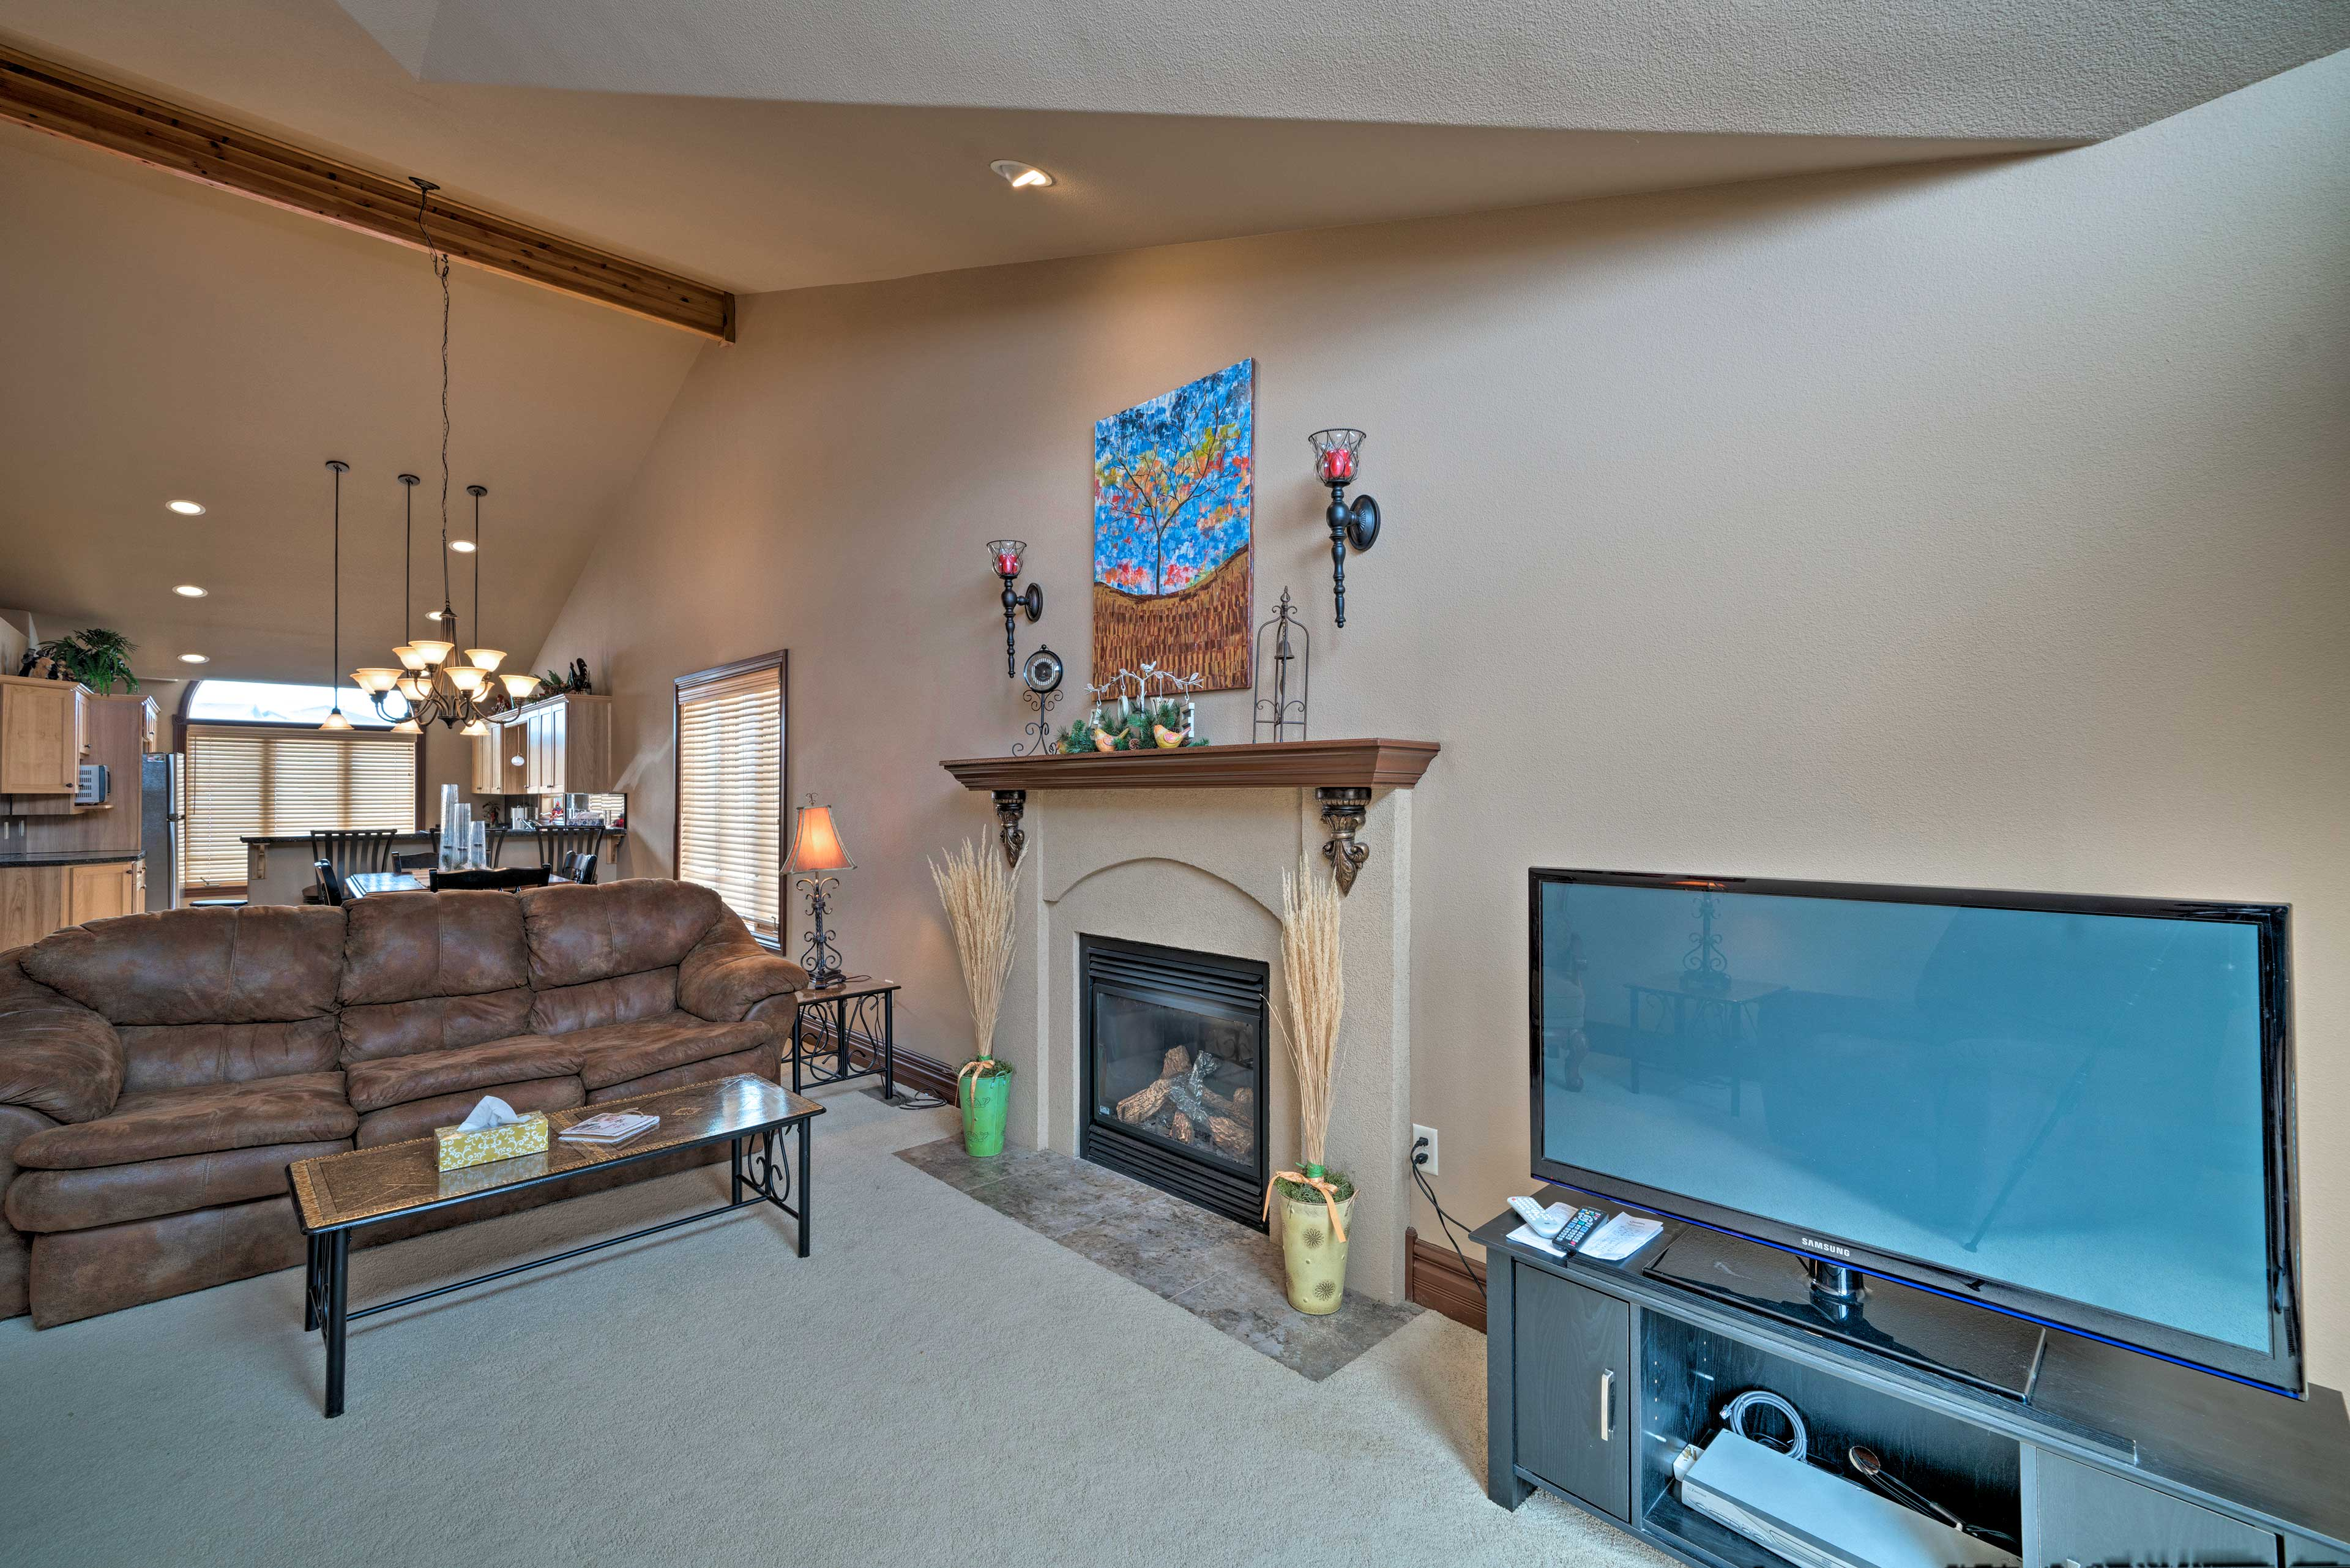 Unwind in the living room and watch your favorite shows on the flat-screen TV.